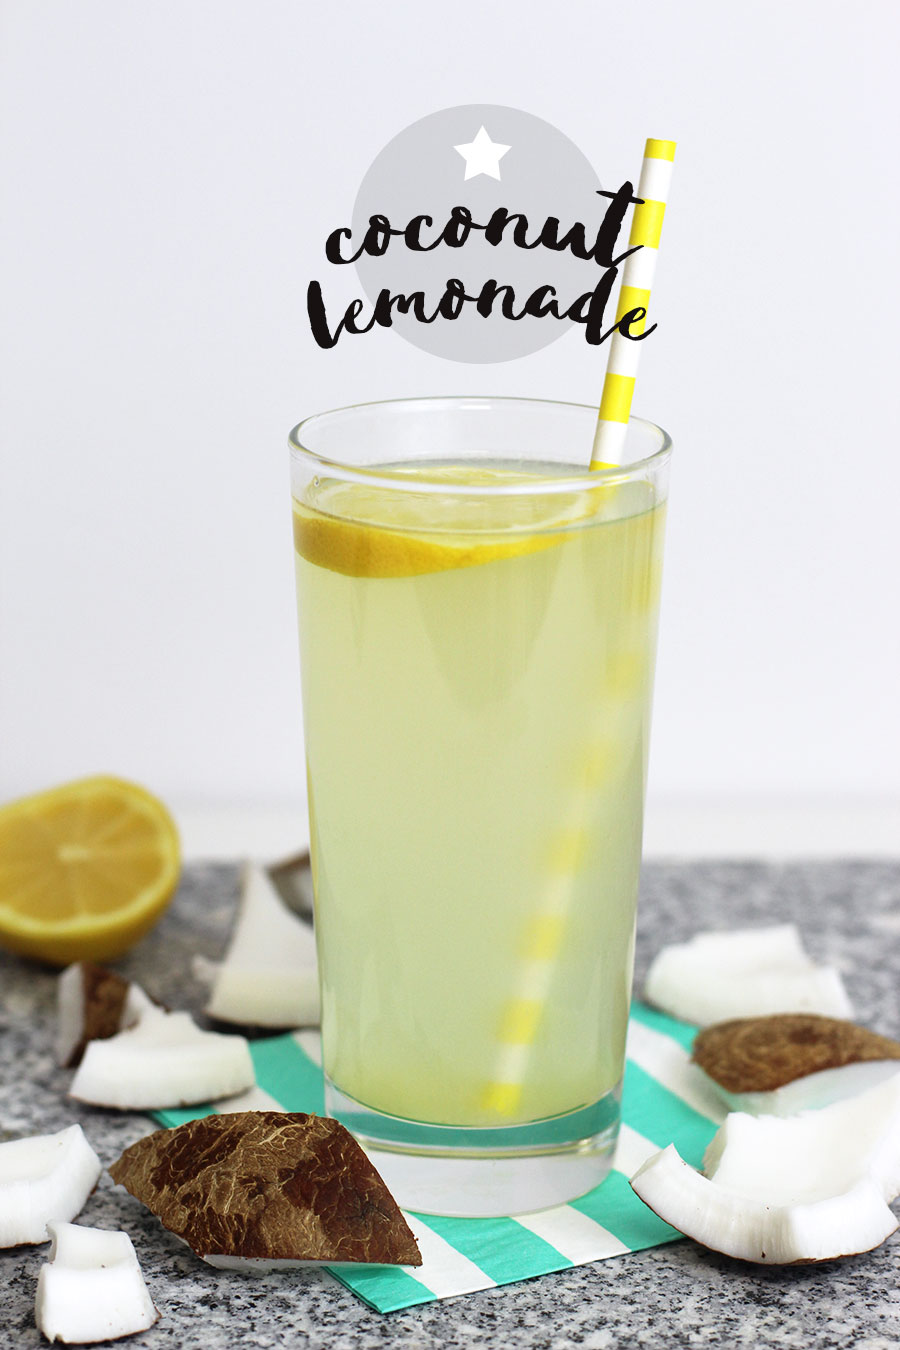 A delicious summer drink made with coconut water, lemon juice and sugar. It's a great alternative to gatorade when you need to quench your thirst. Plus, it's completely natural with tons of essential vitamins. Perfect for a warm summer day or after a workout. Click for recipe.